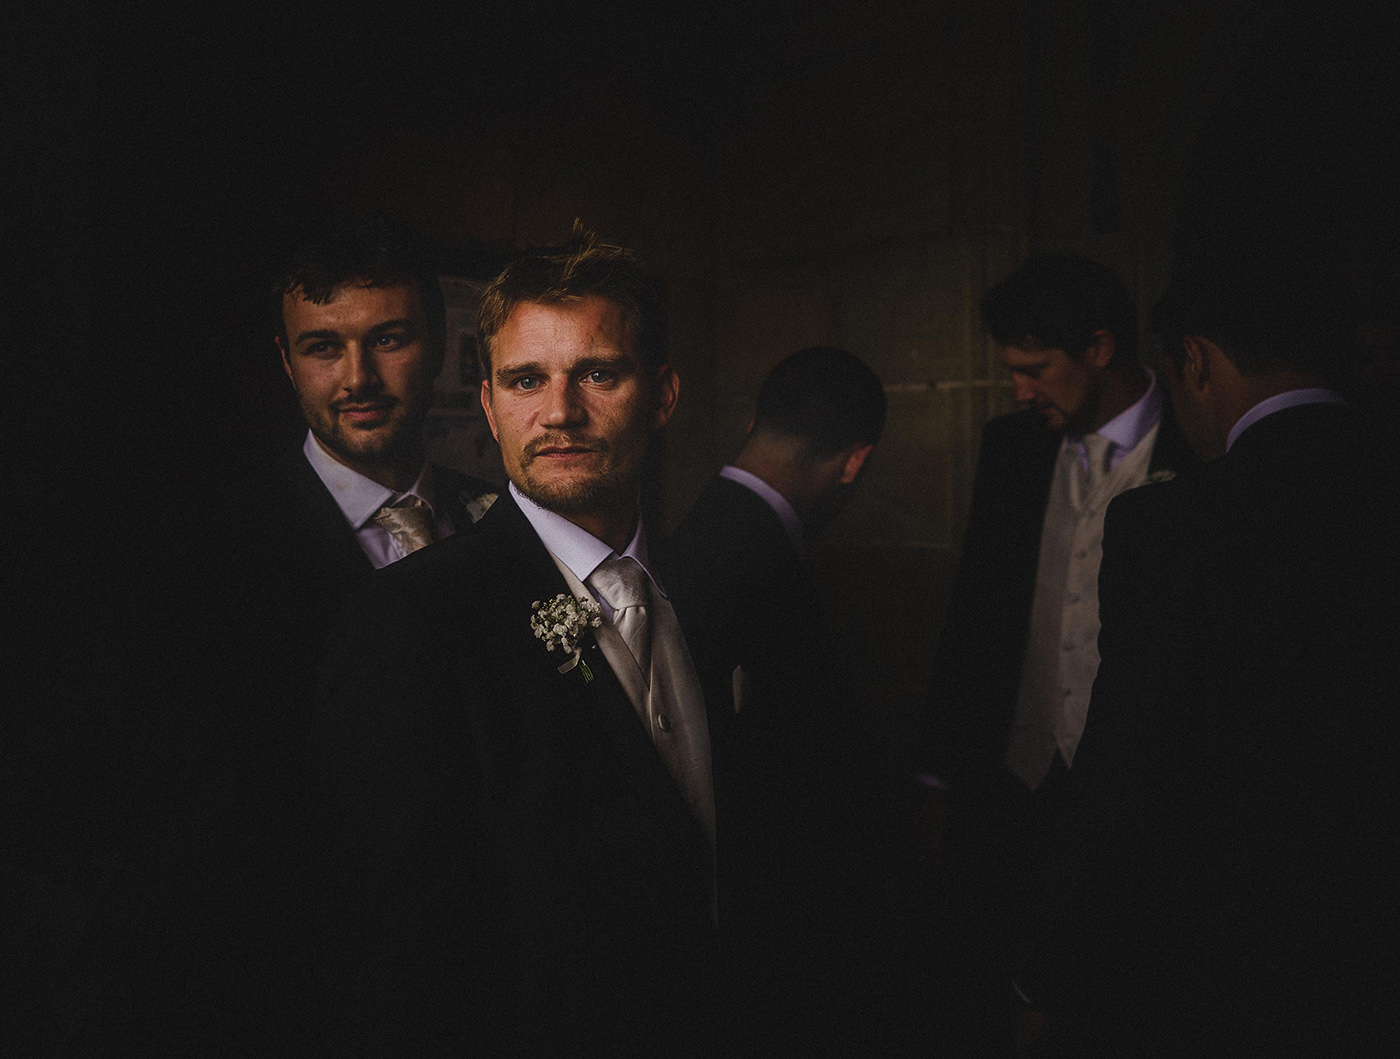 a best man's portrait